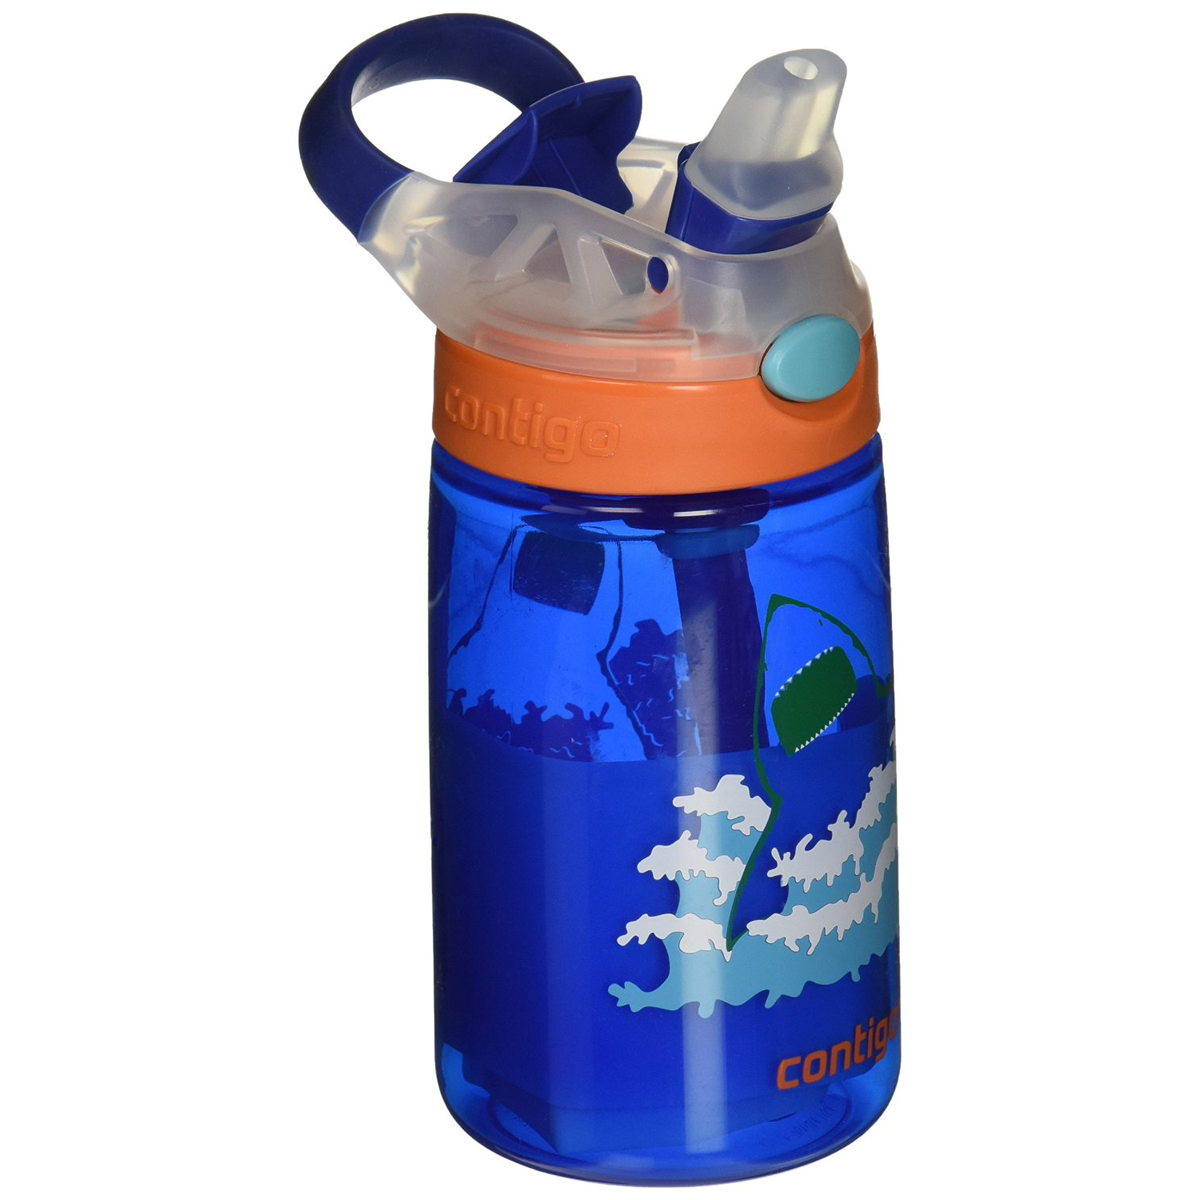 Contigo-14-oz-Kid-039-s-Autospout-Gizmo-Flip-Water-Bottle Indexbild 11